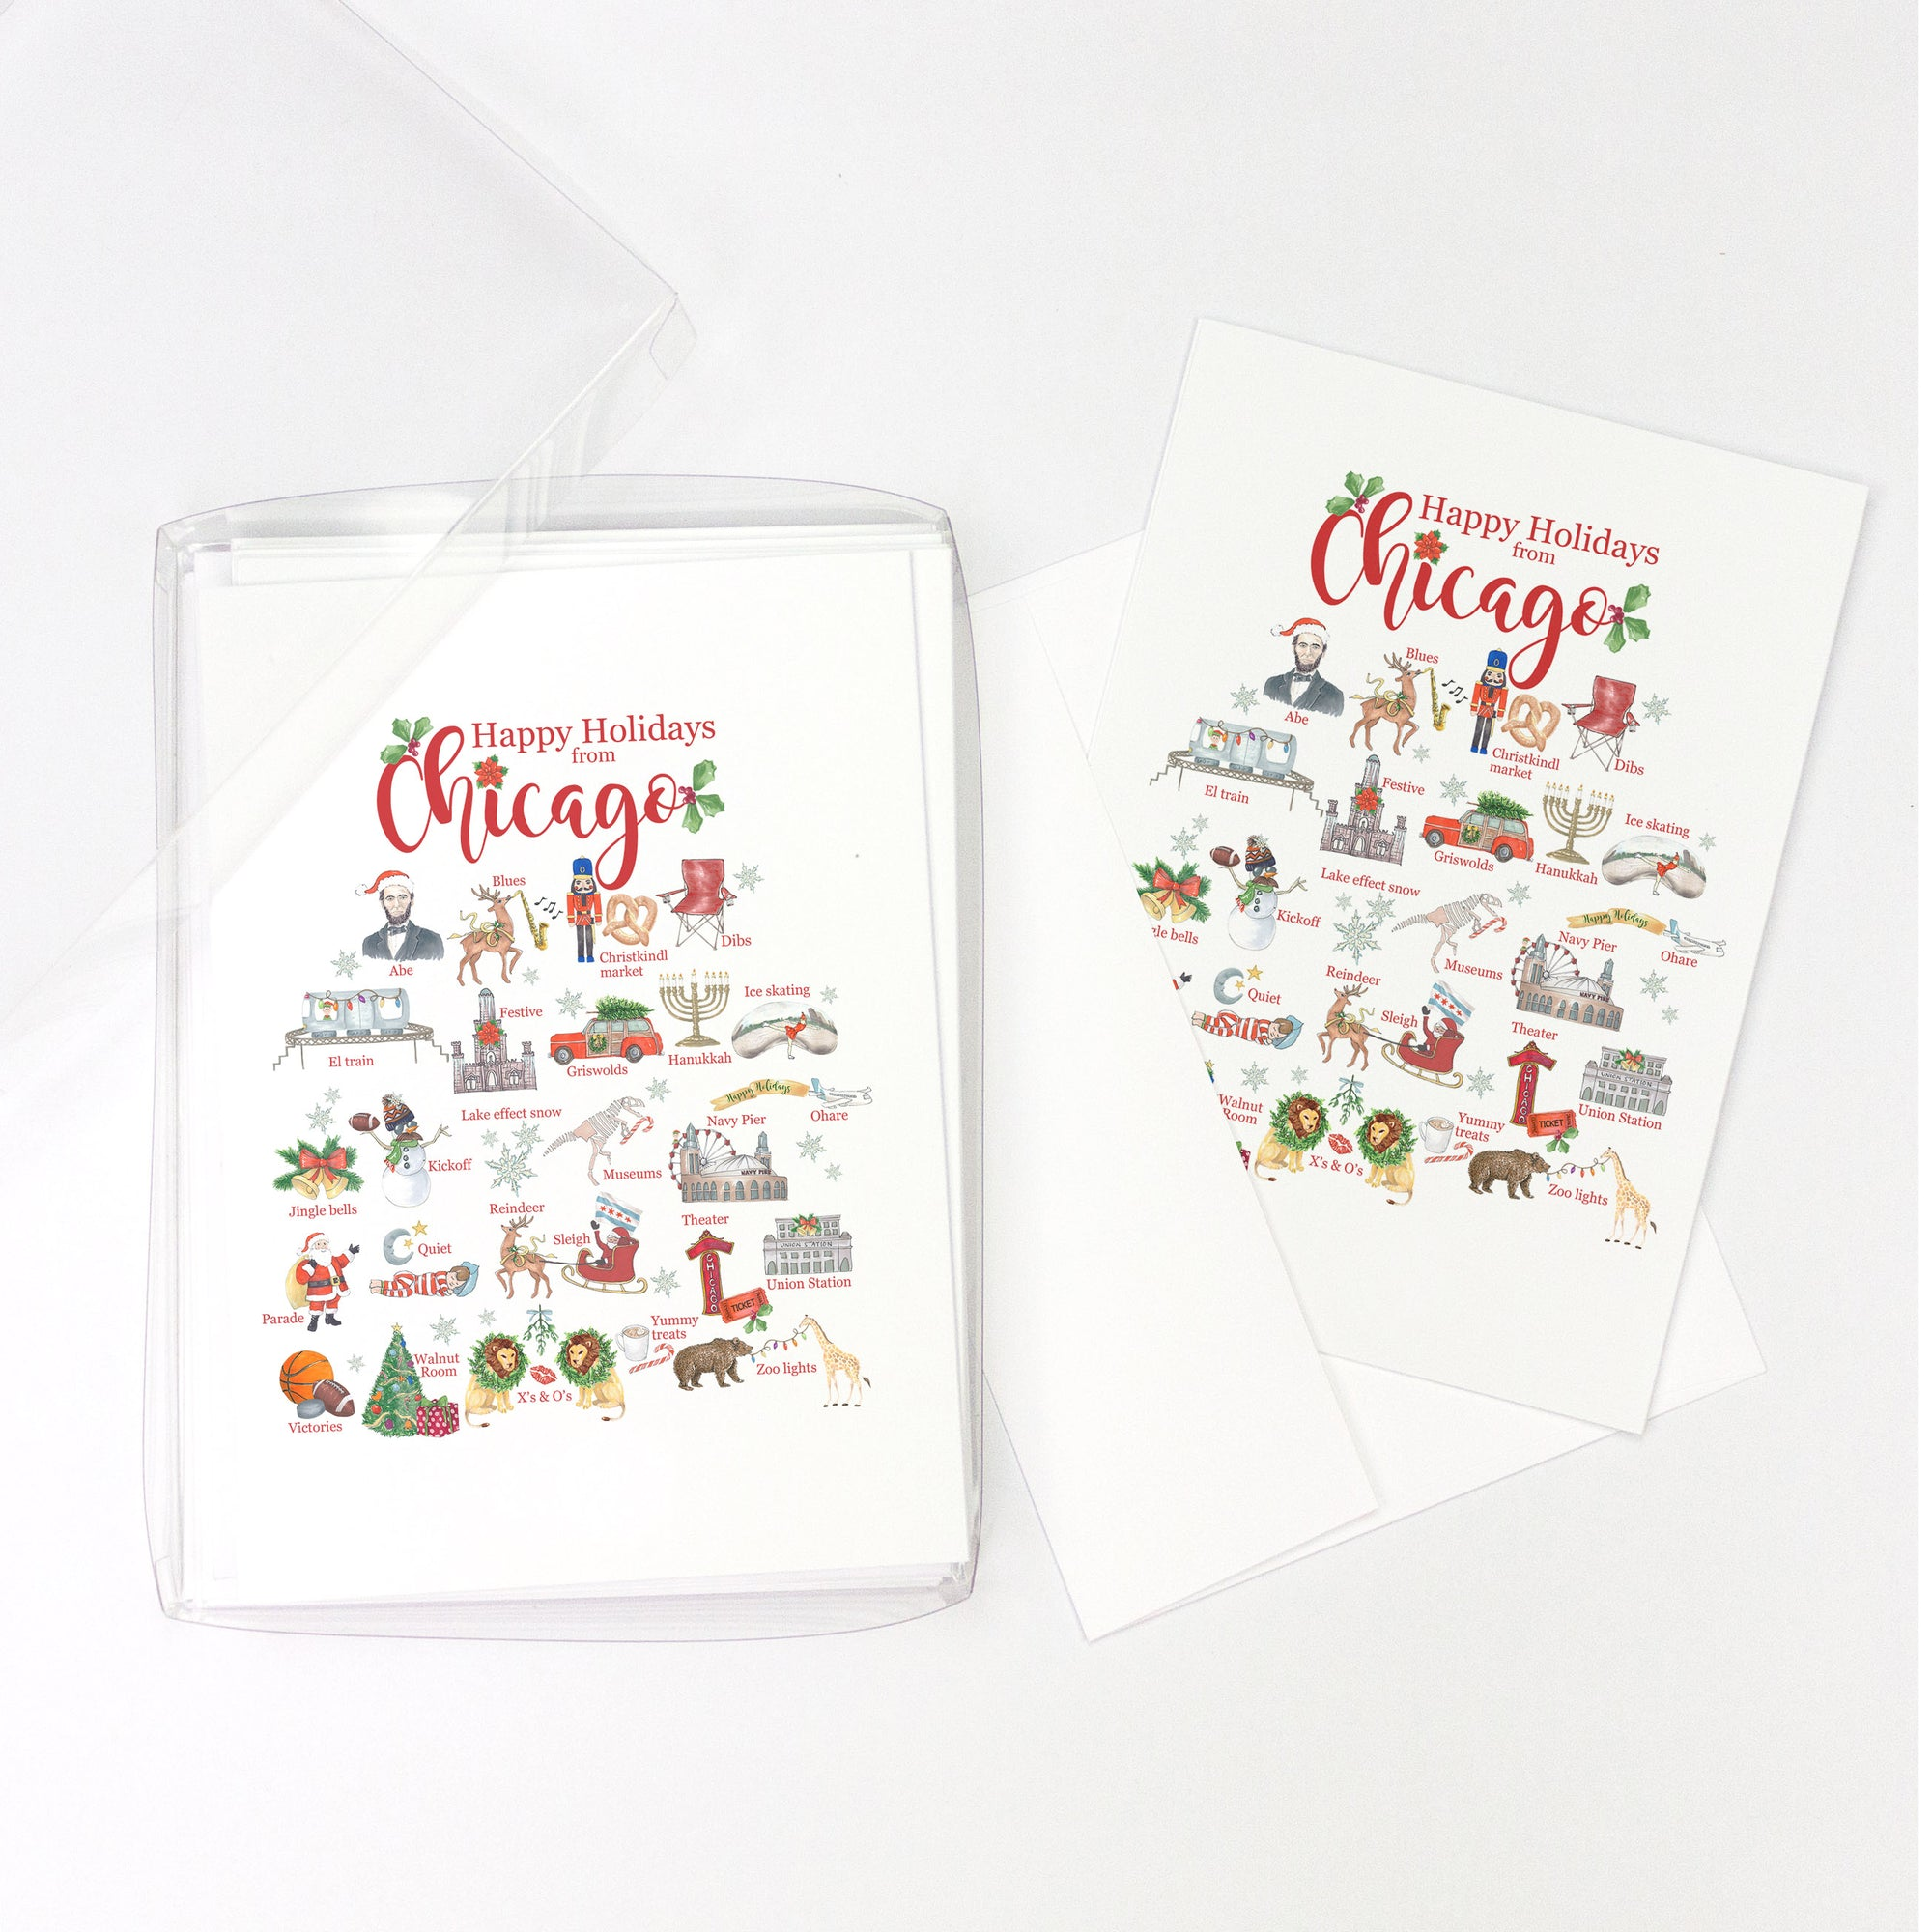 Happy Holidays from Chicago Alphabet Greeting Cards, Pack of 10 cards (blank inside)